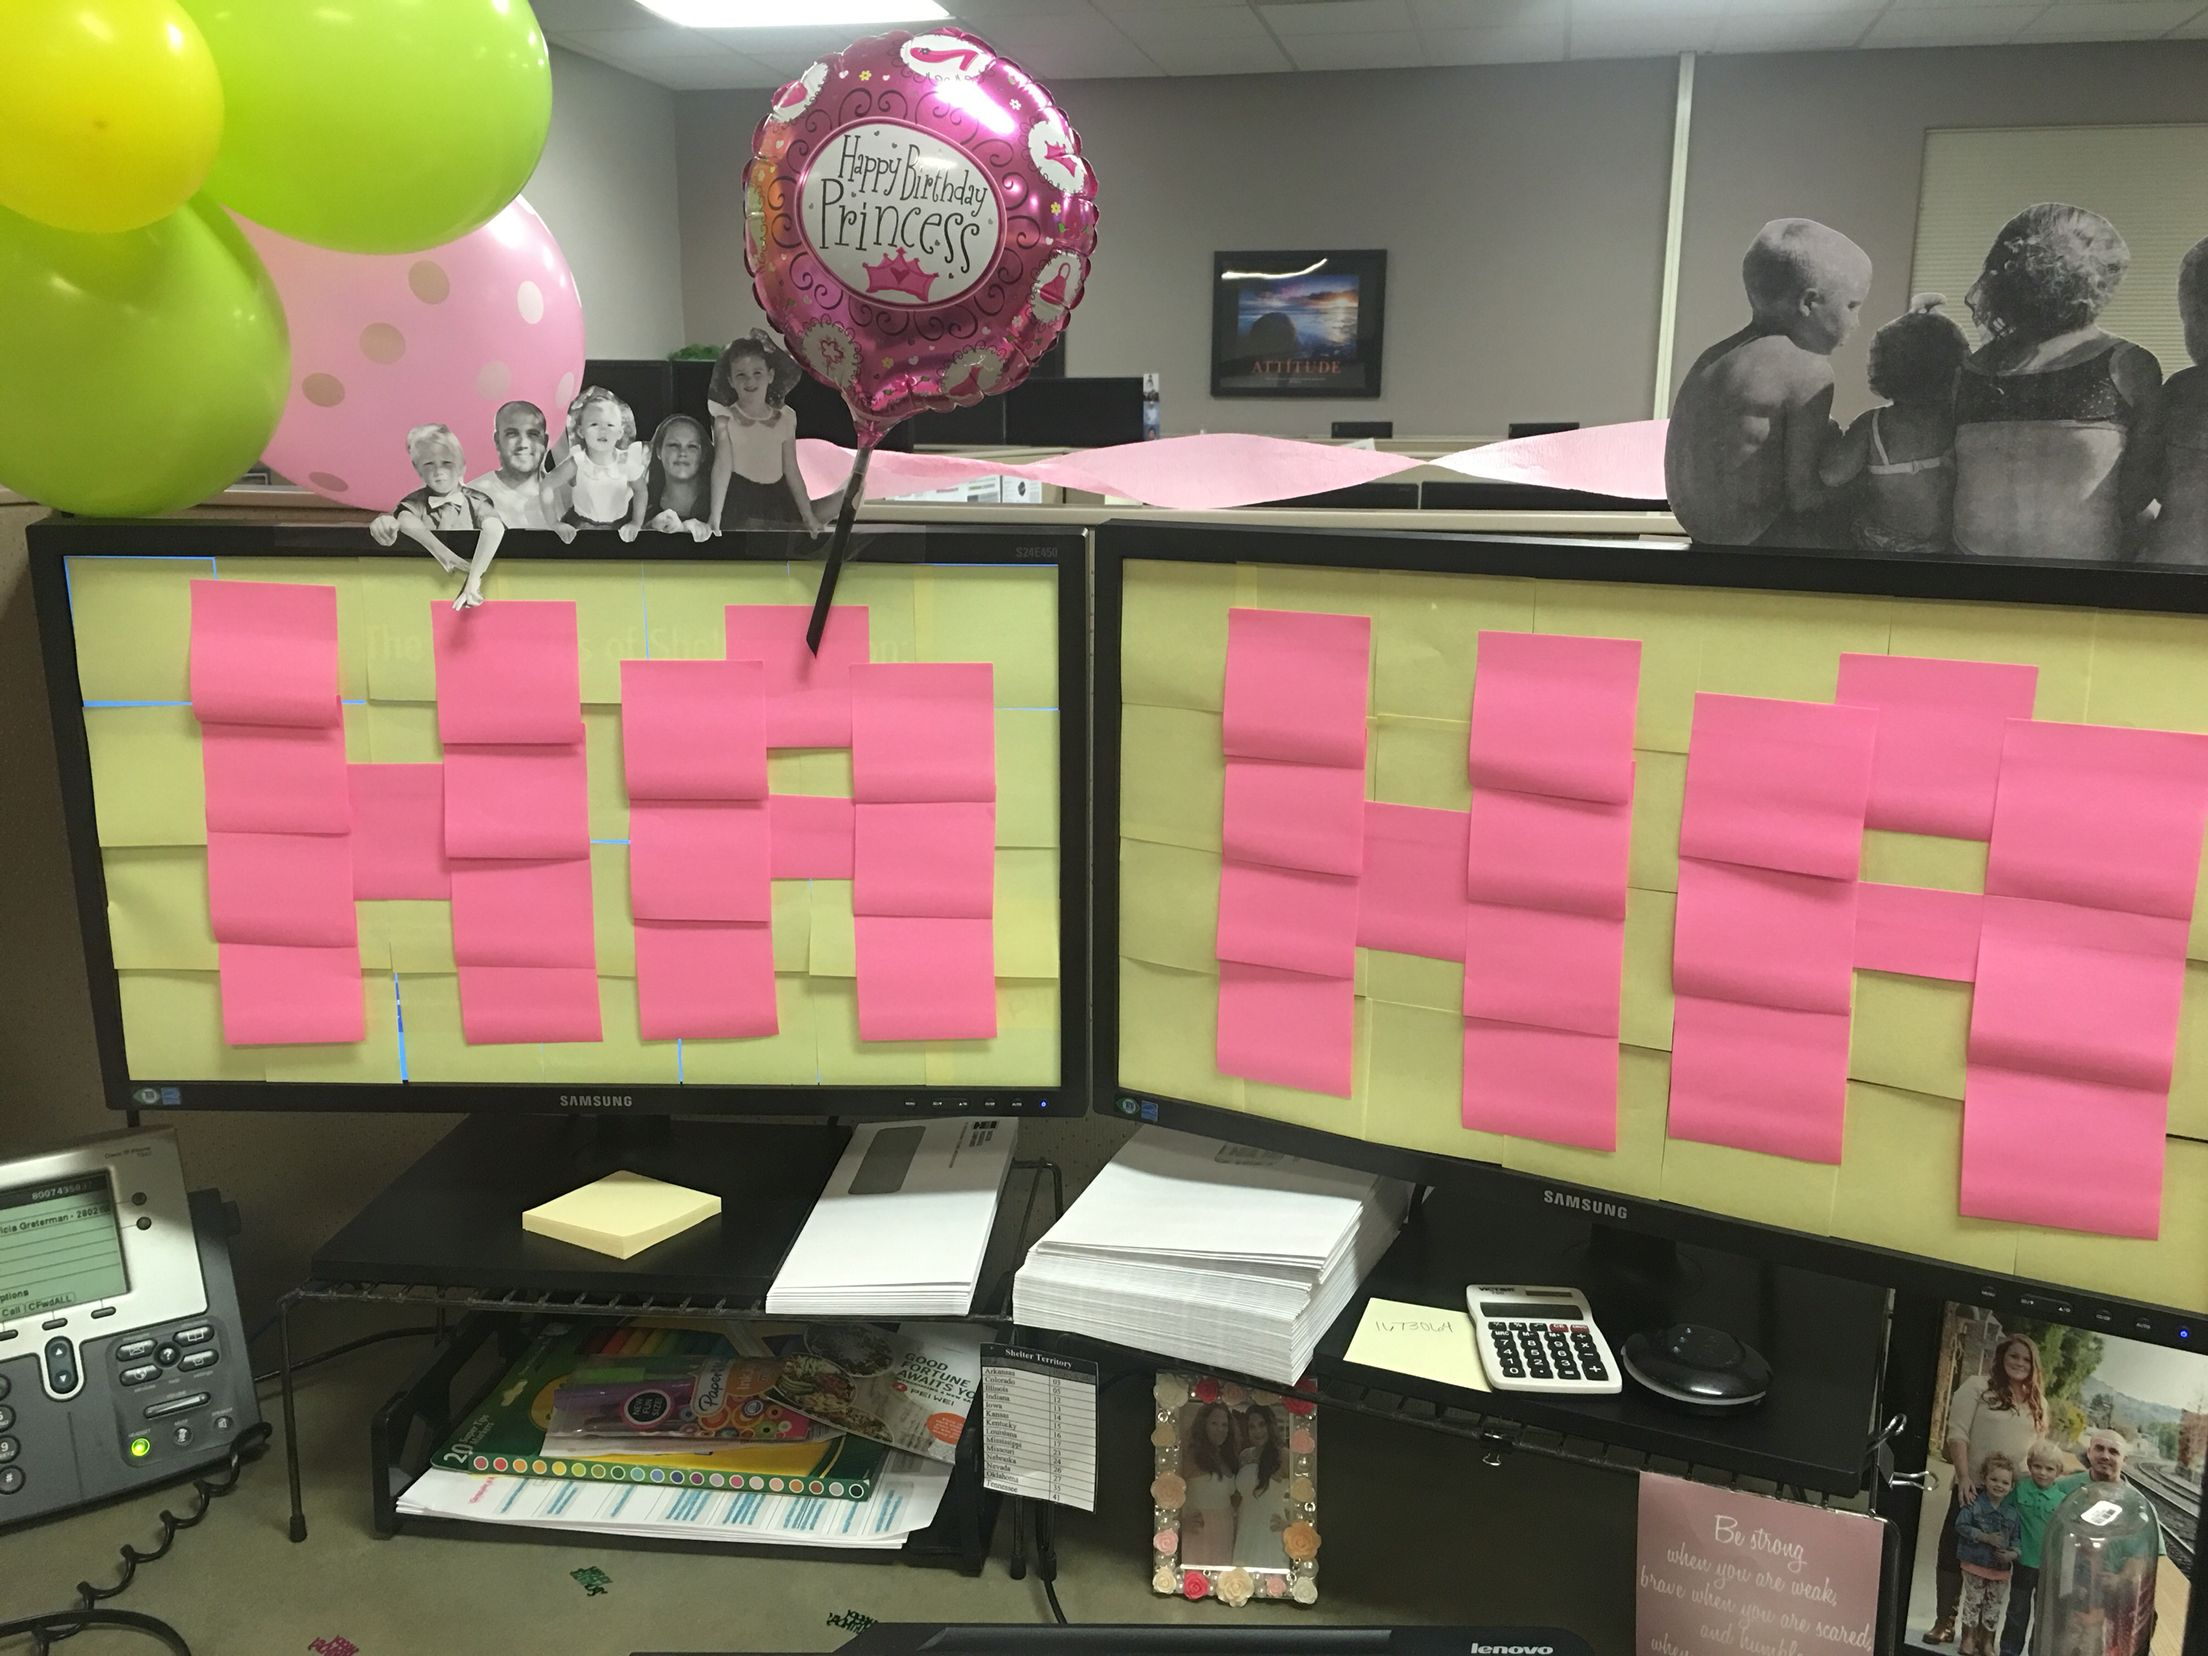 Work Office Decorating Ideas Pictures Work Decoration Birthday Cubicle Balloon Sticky Note